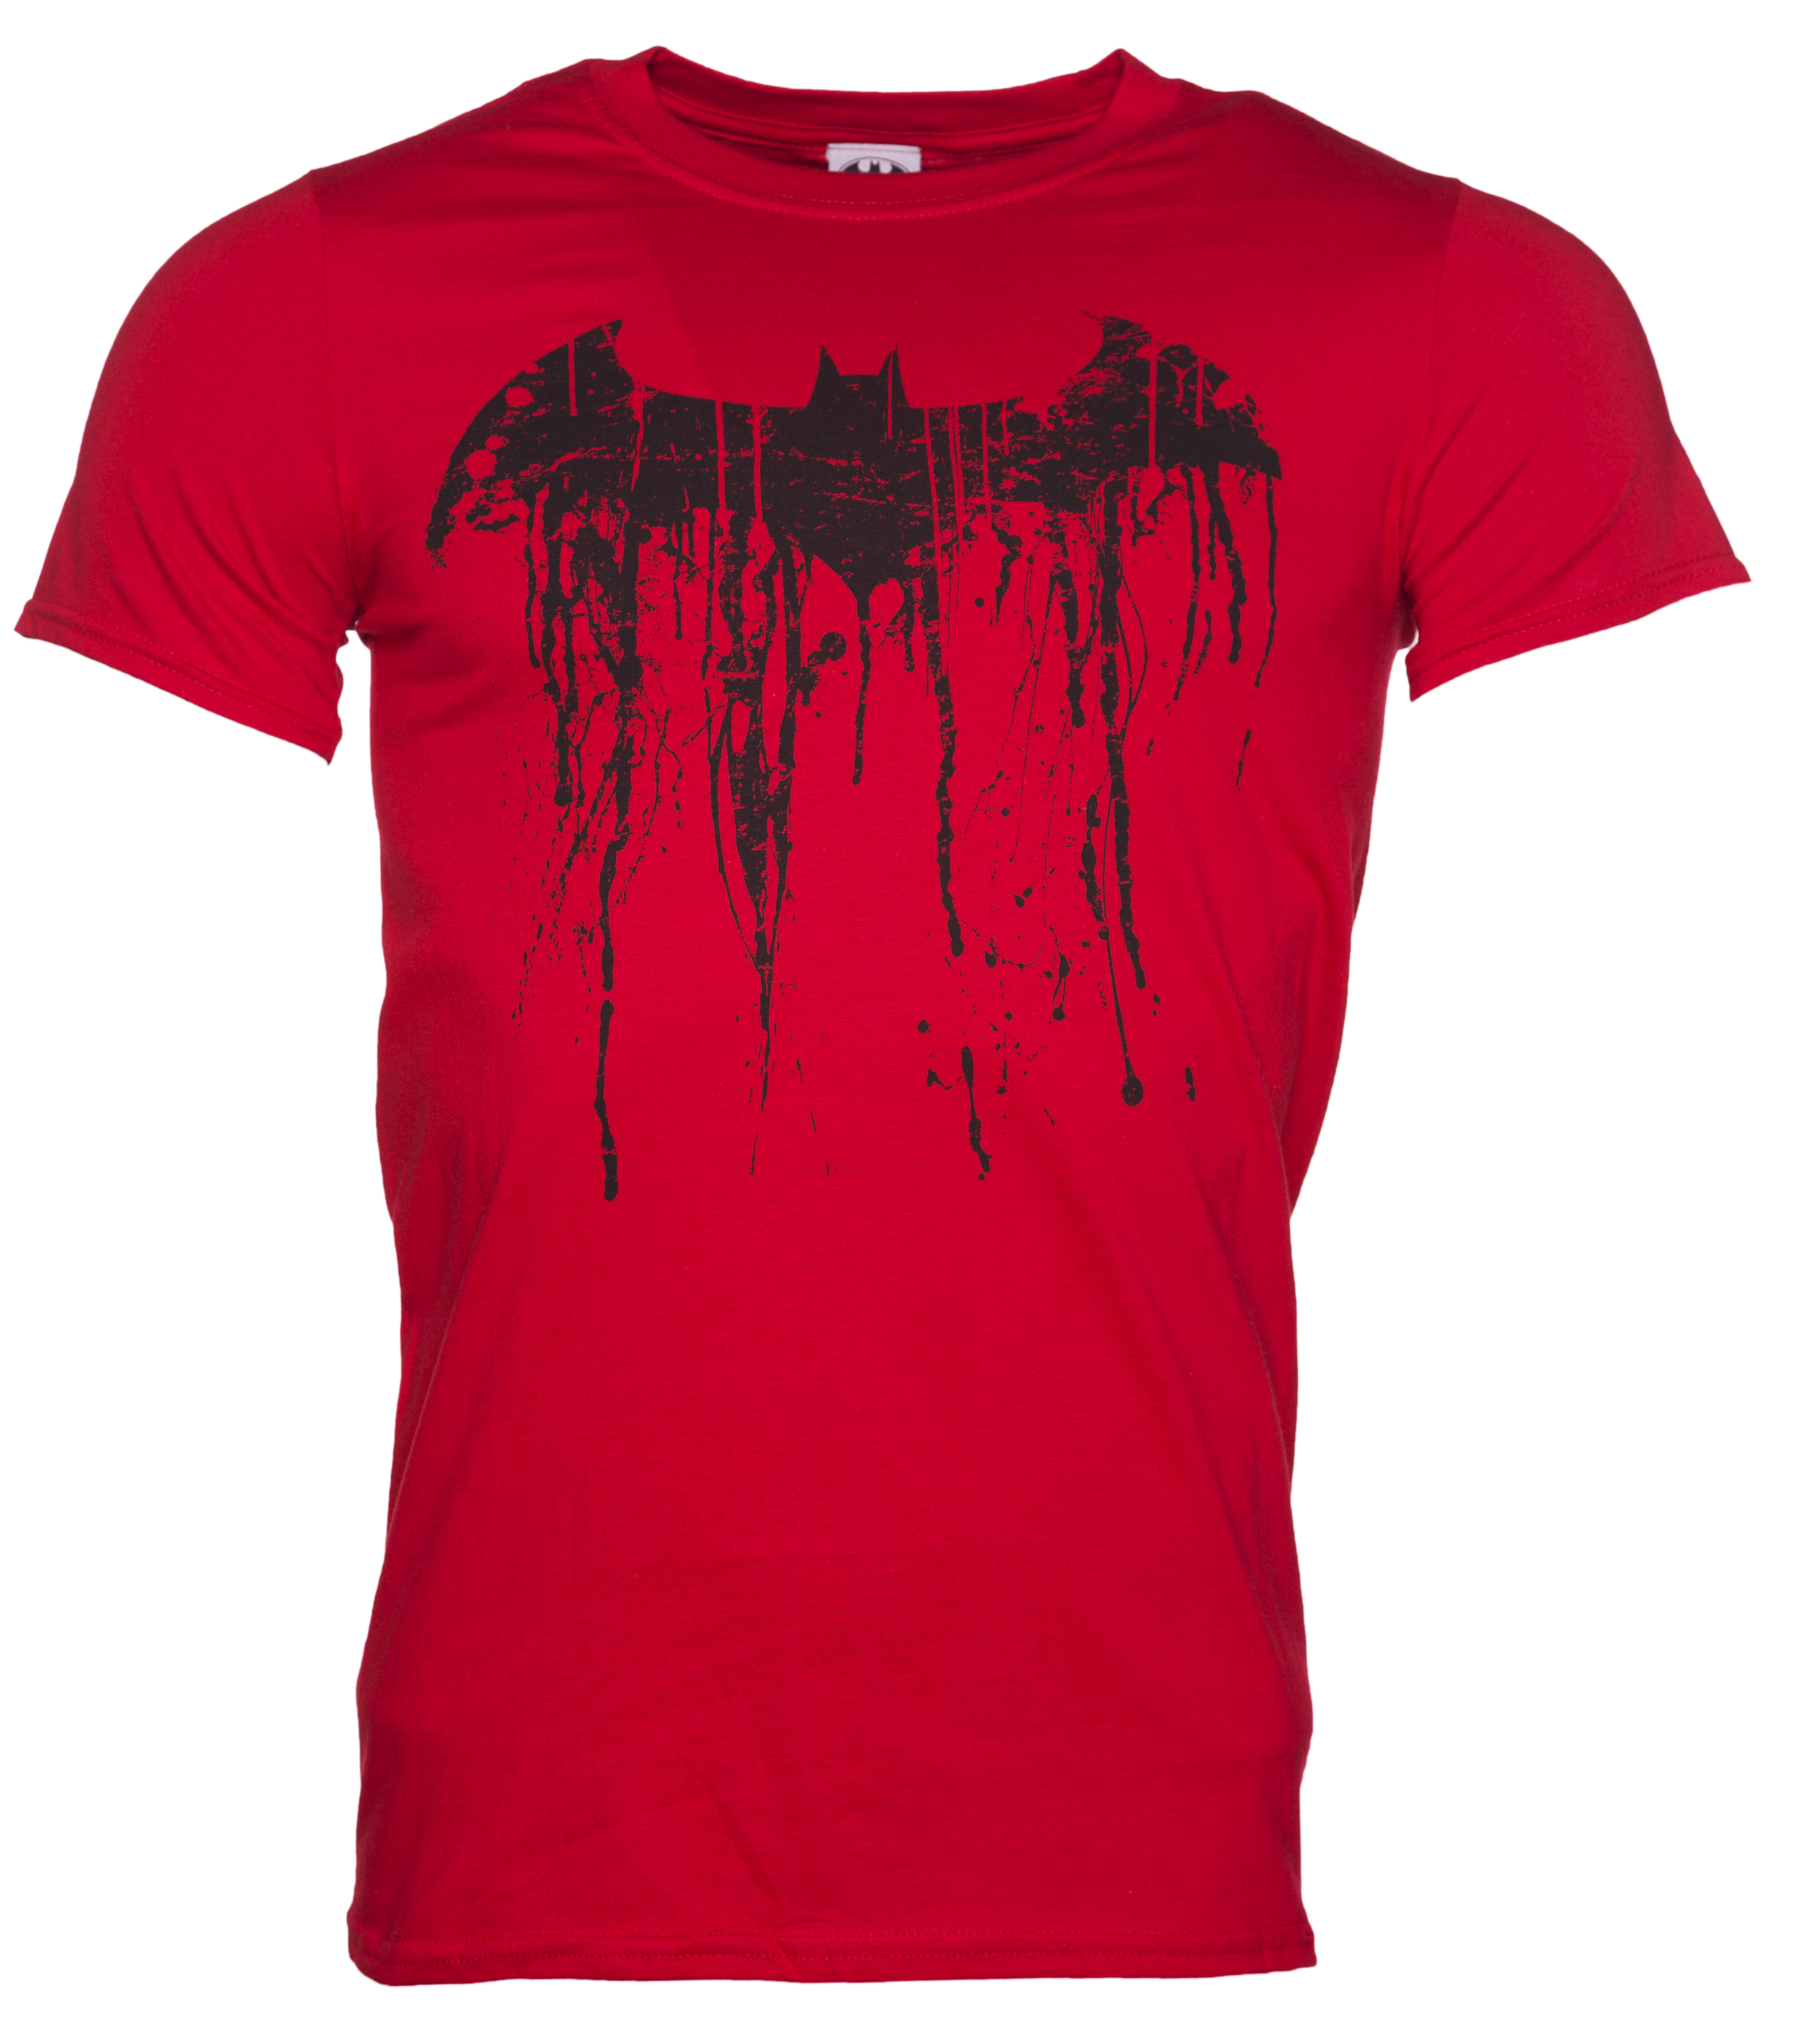 men 39 s red batman graffiti logo t shirt. Black Bedroom Furniture Sets. Home Design Ideas